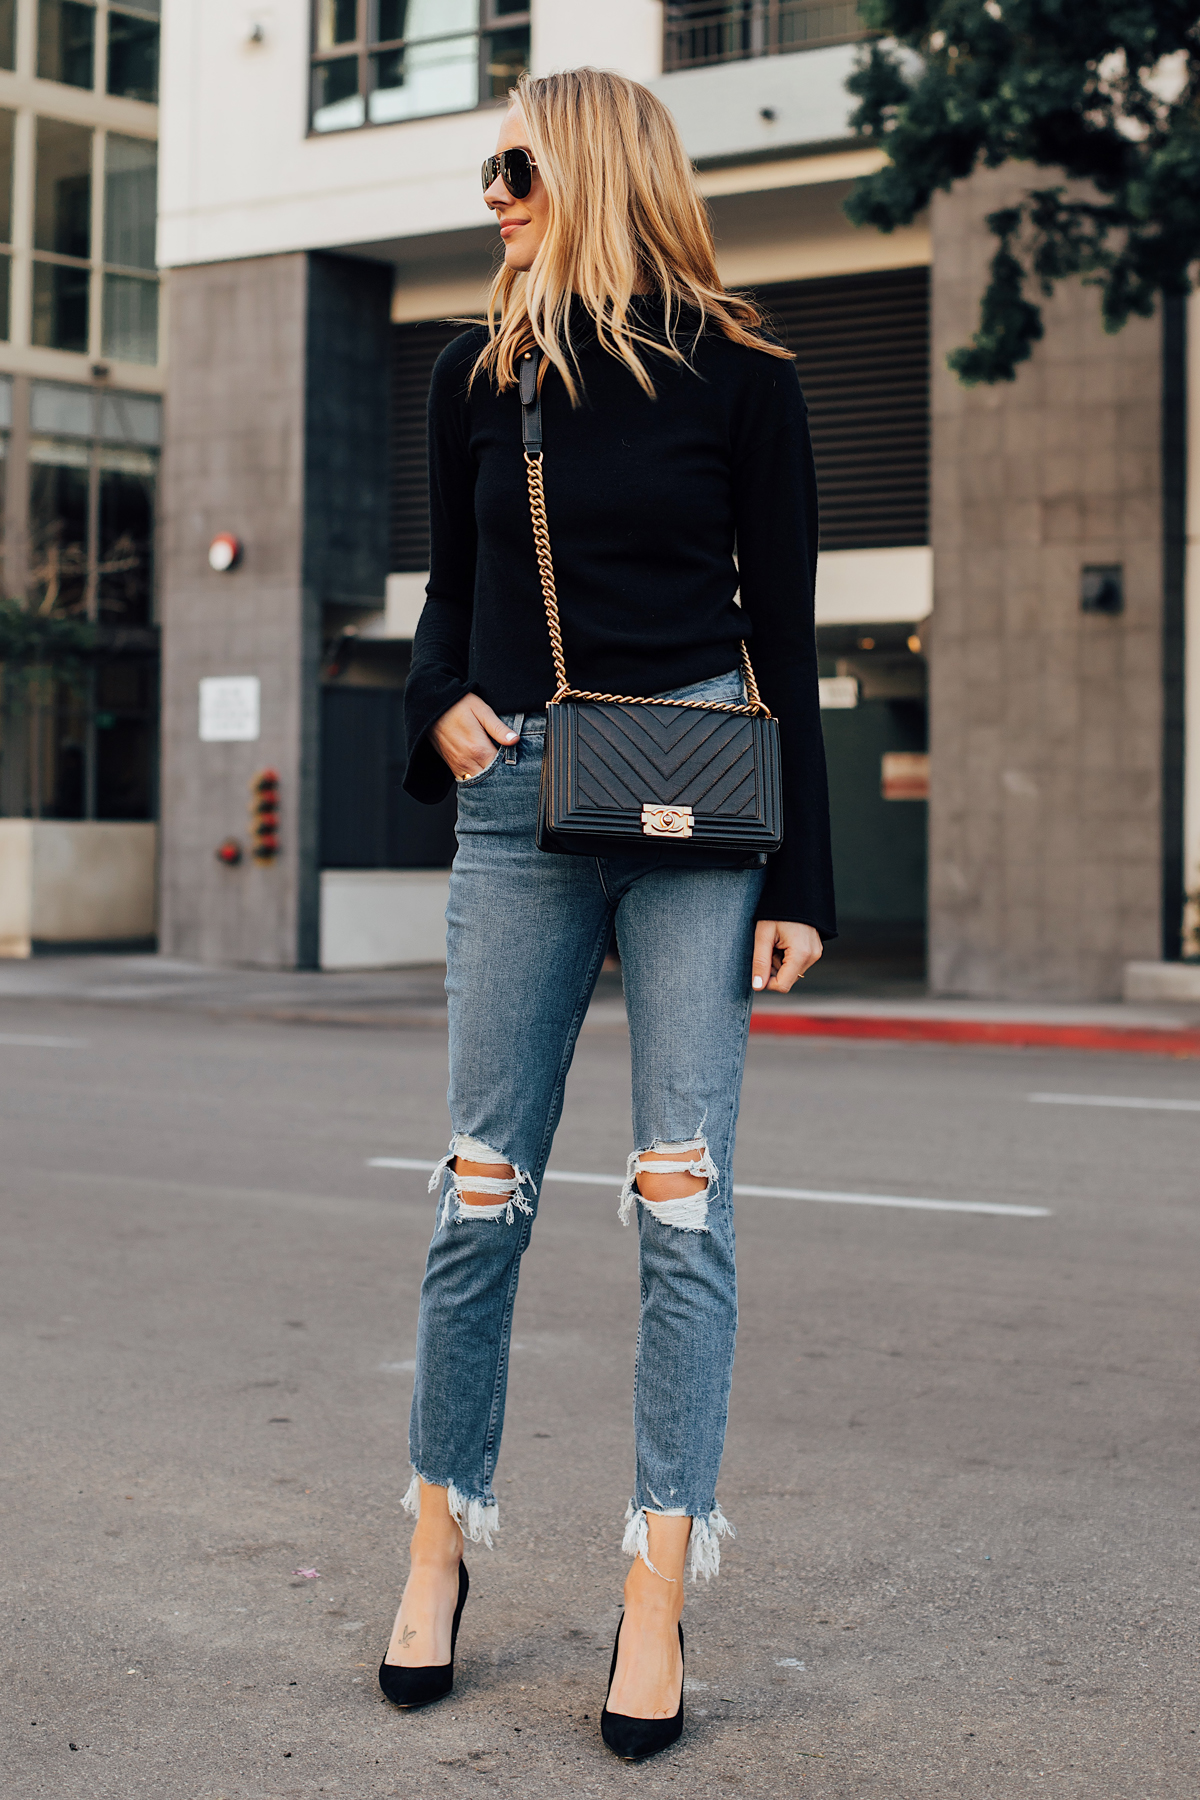 Blonde Woman Wearing Theory Black Bell Sleeve Sweater Paige Ripped Skinny Jeans Black Pumps Chanel Black Handbag Fashion Jackson San Diego Fashion Blogger Street Style